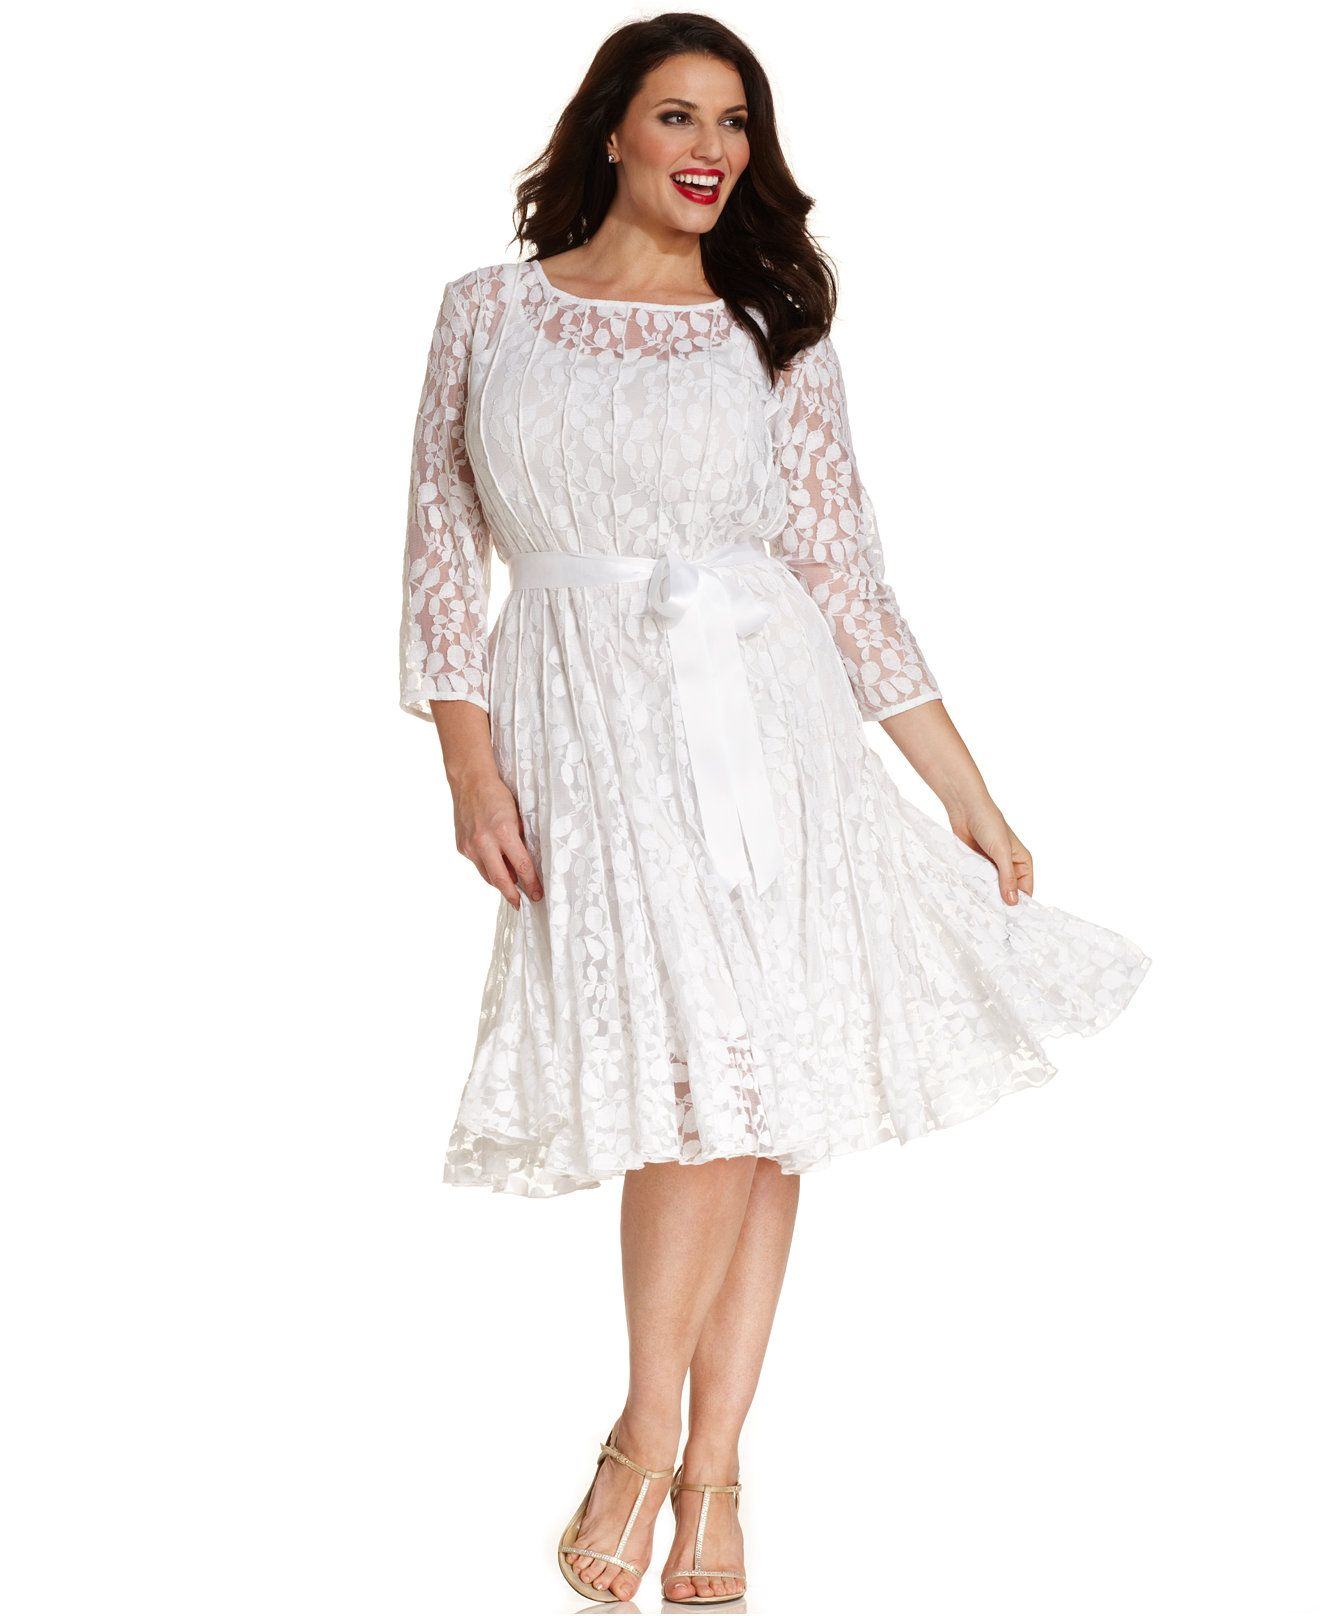 69ddcfcf625 MSK Plus Size Illusion Floral Lace Dress - Dresses - Women - Macy s ...